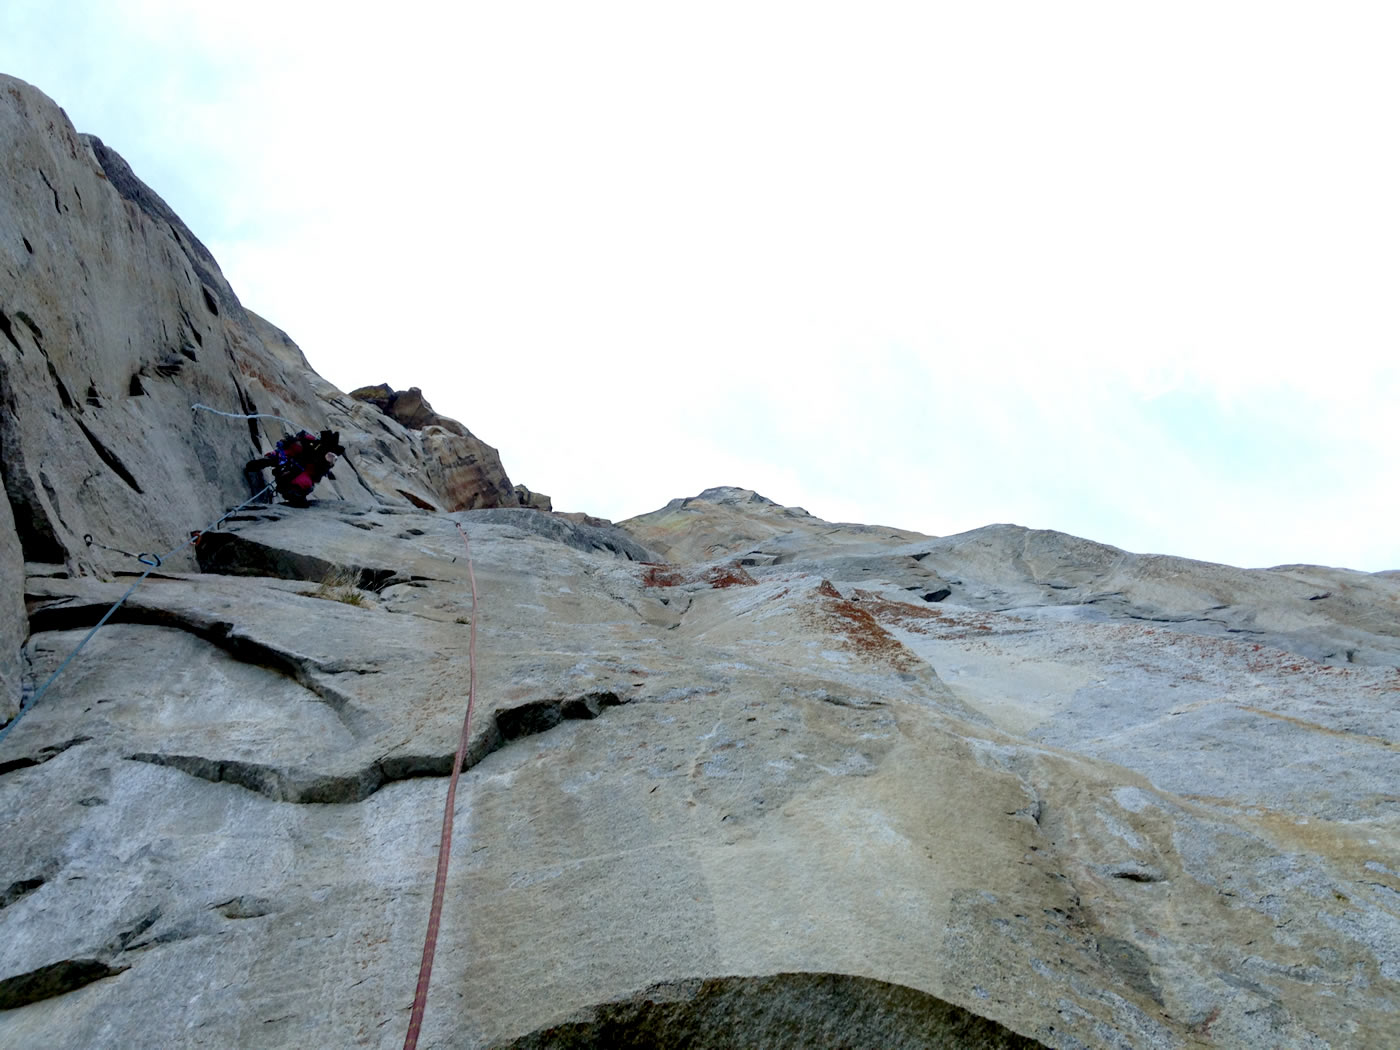 Josie McKee leading the last block to the top of Lost Arrow Spire on Day 2. [Photo] Quinn Brett